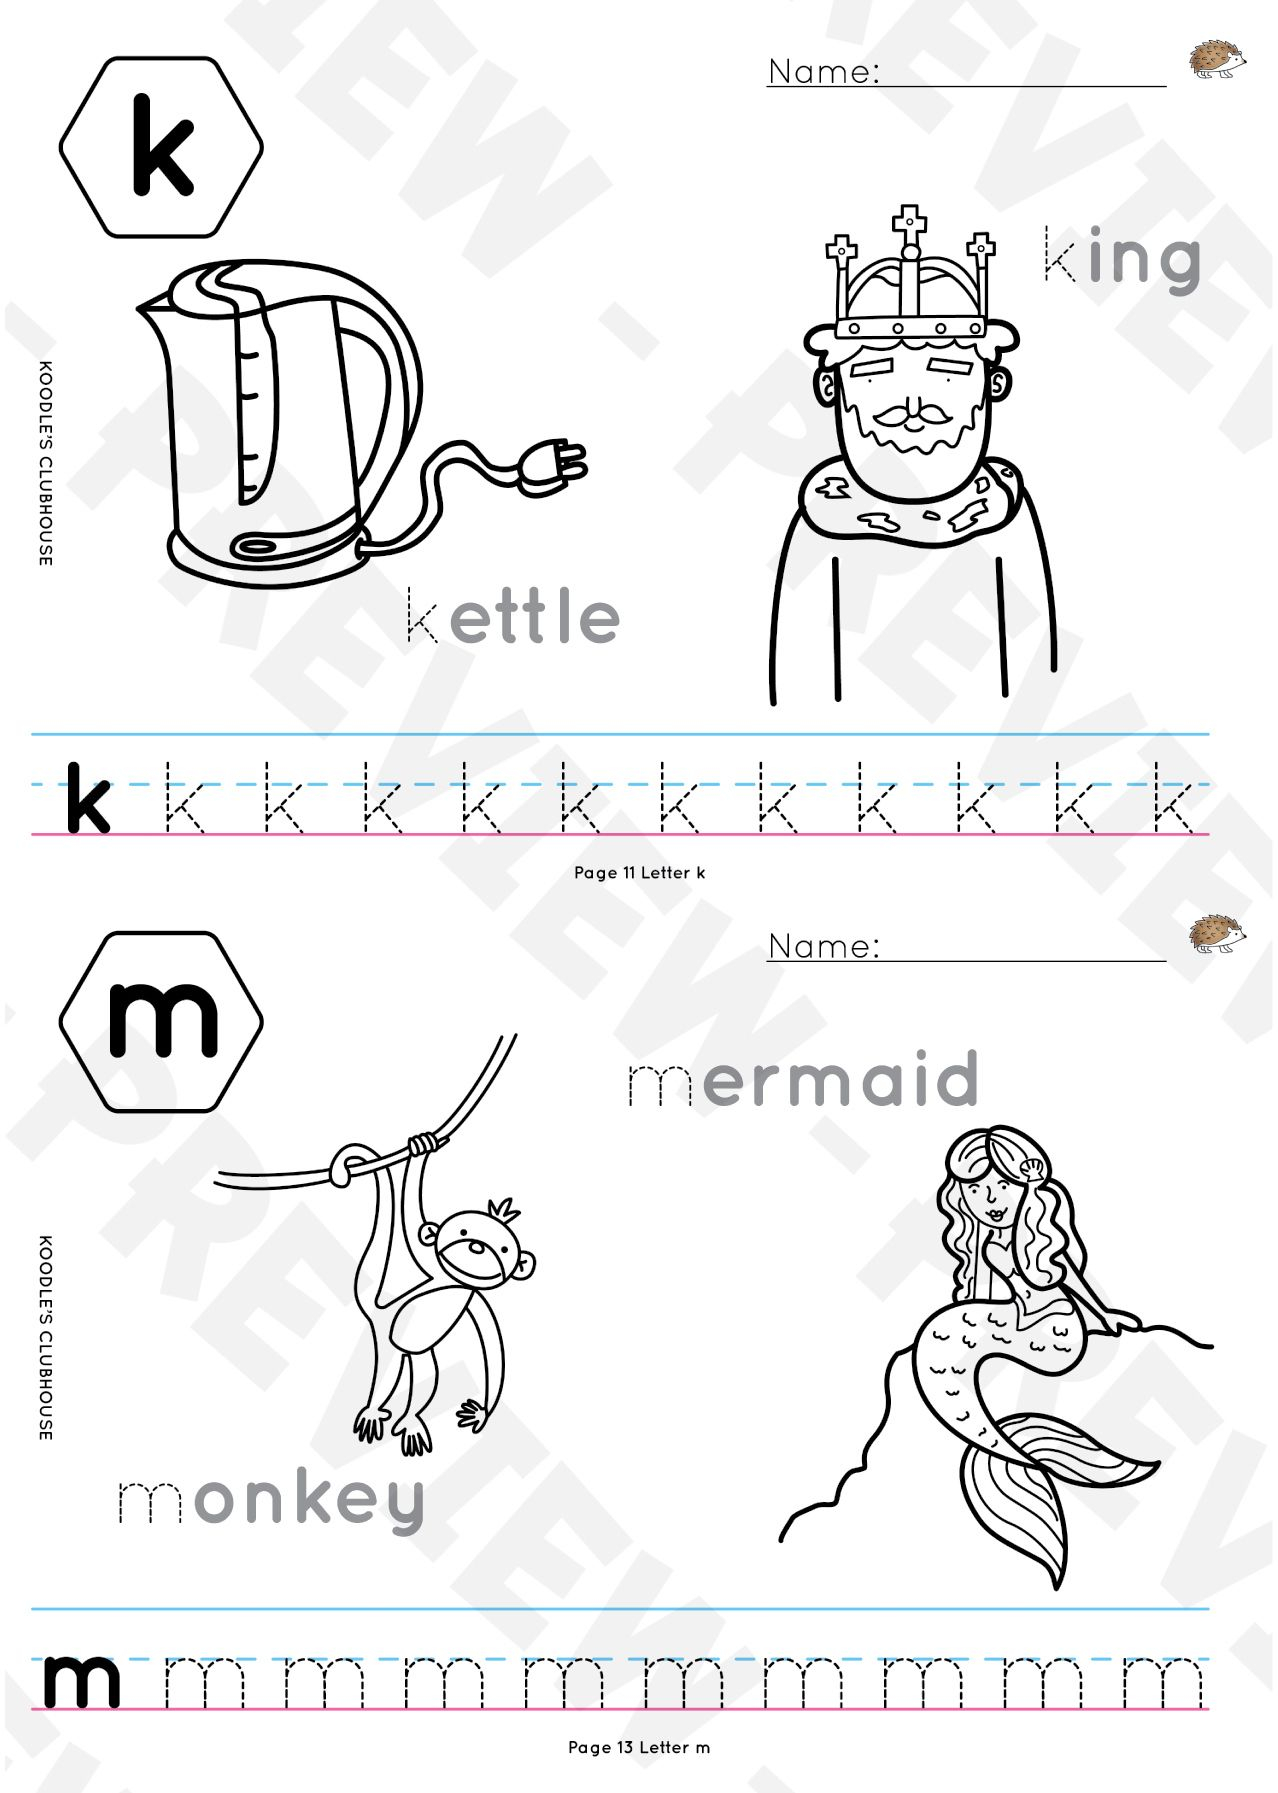 A To Z Tracing Worksheets | Tracing Worksheets, Letter